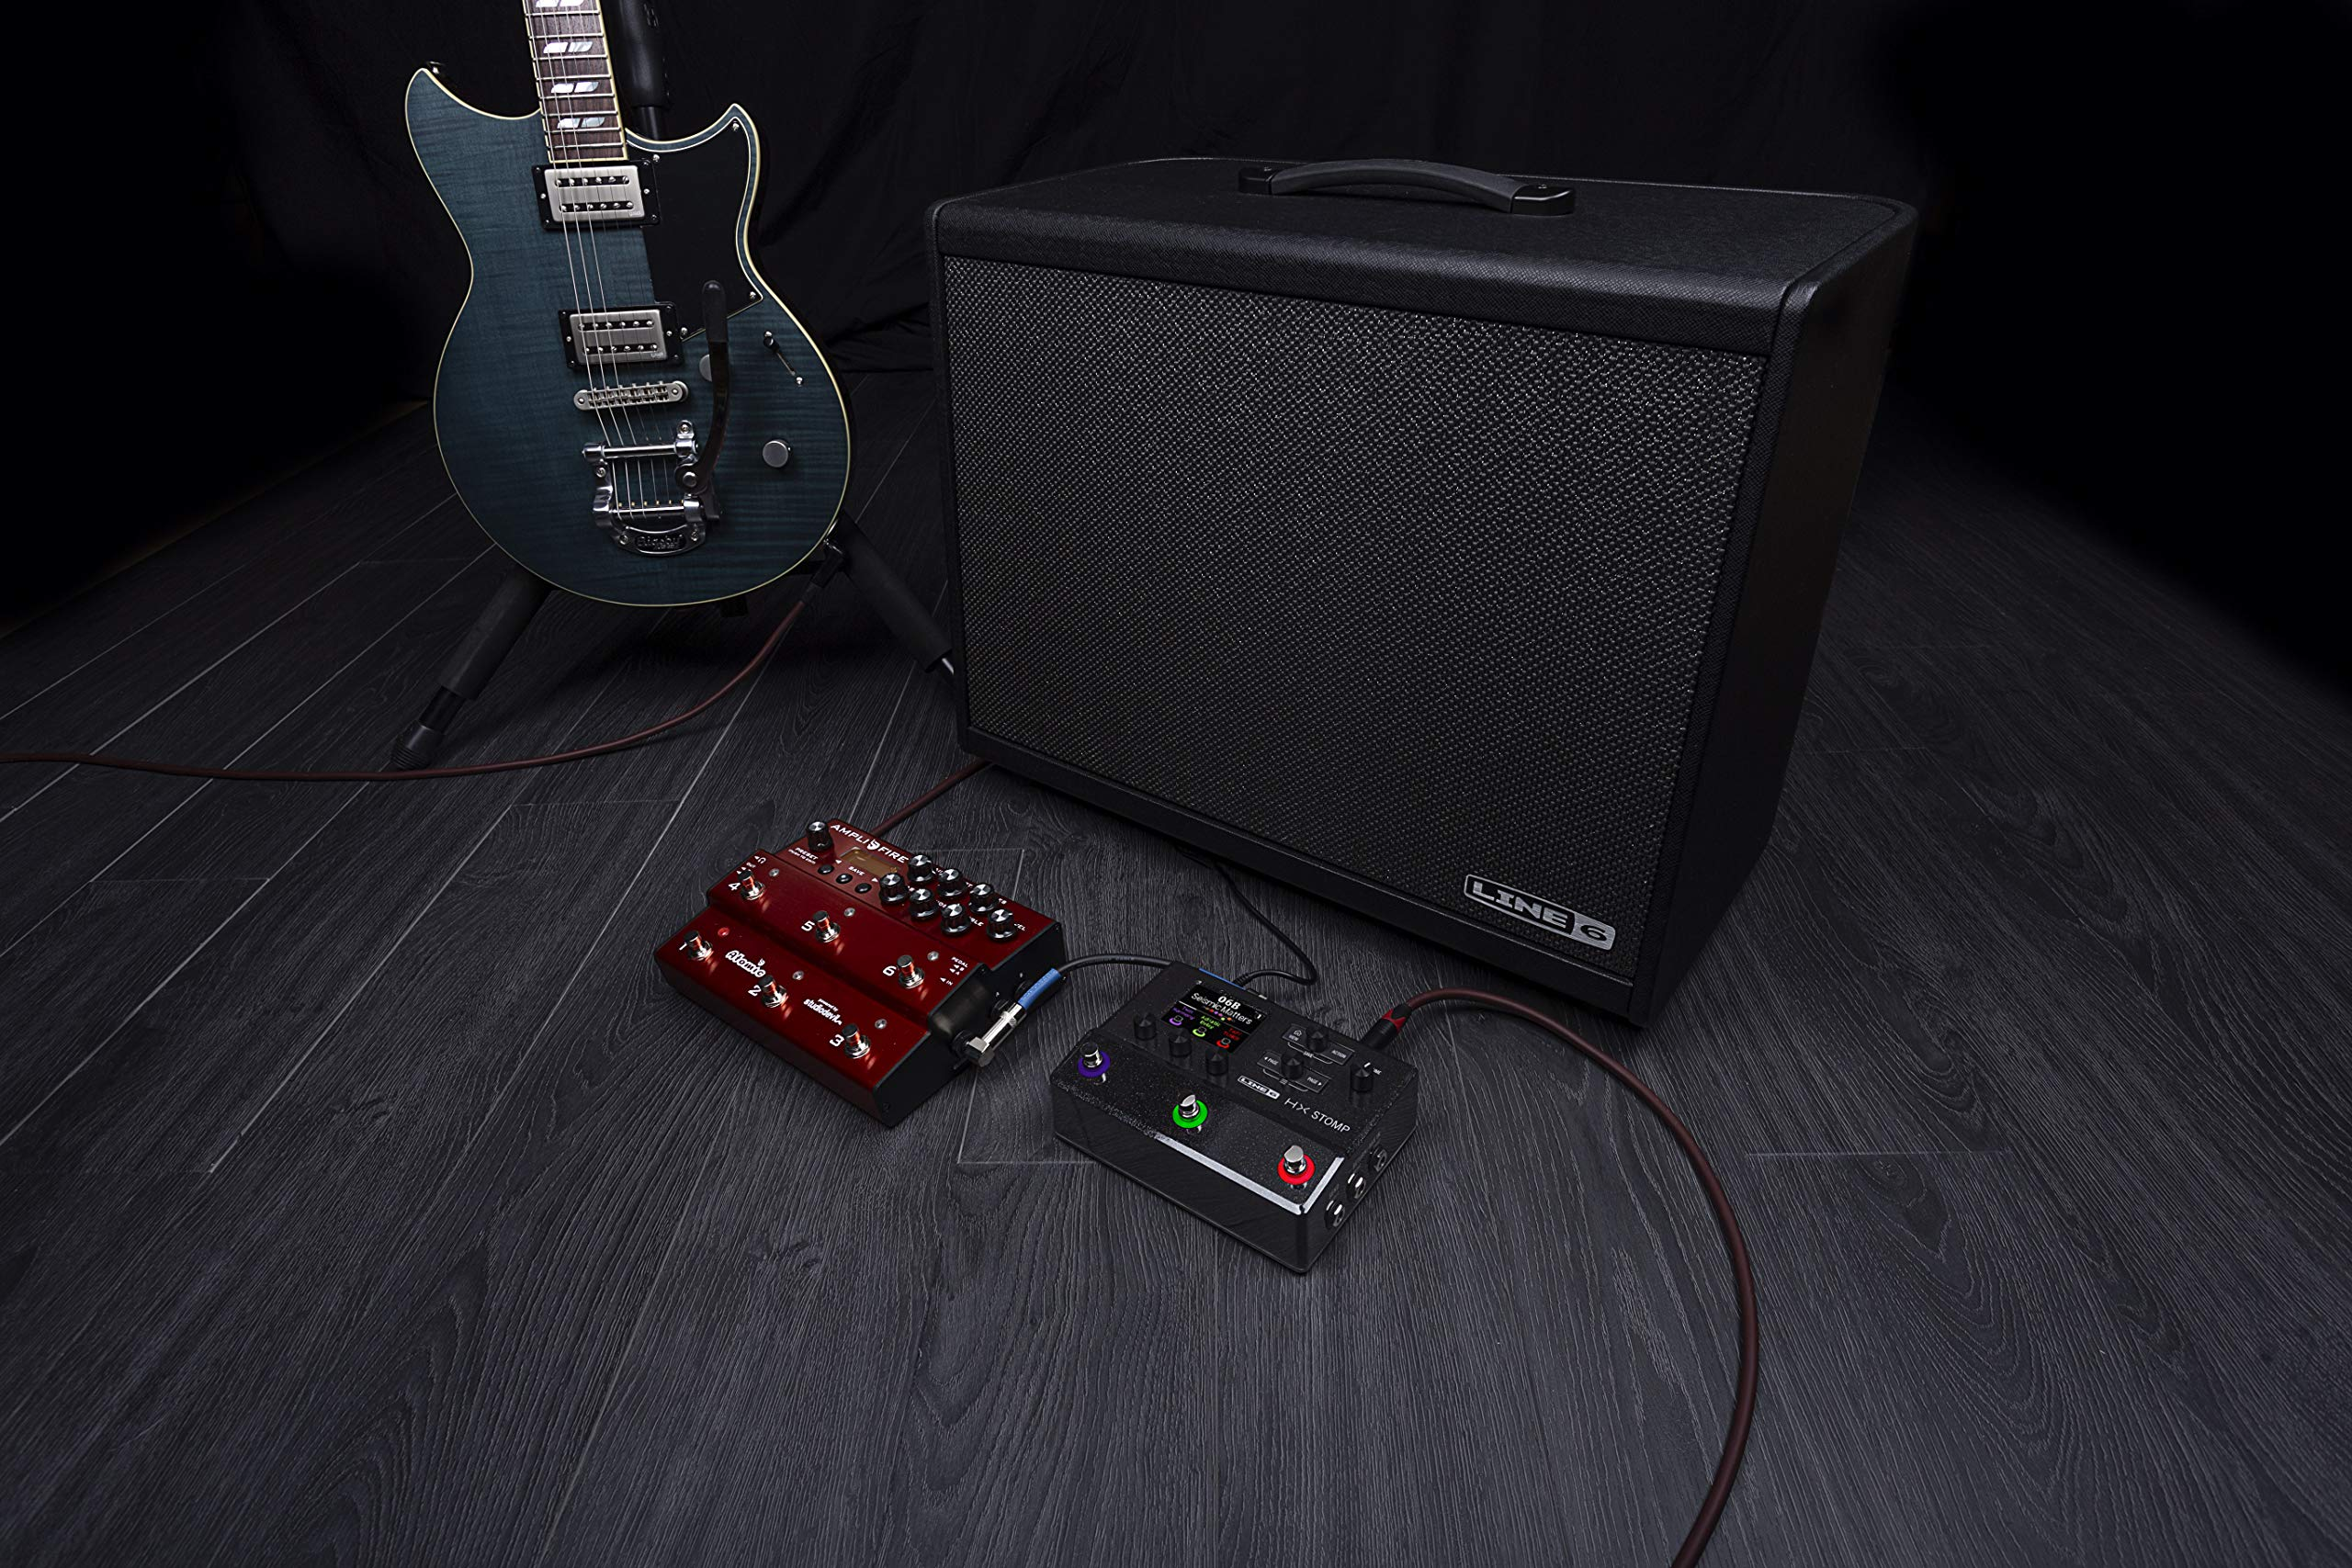 Line 6 Electric Guitar Multi Effect, Black (HX Stomp) by Line 6 (Image #7)